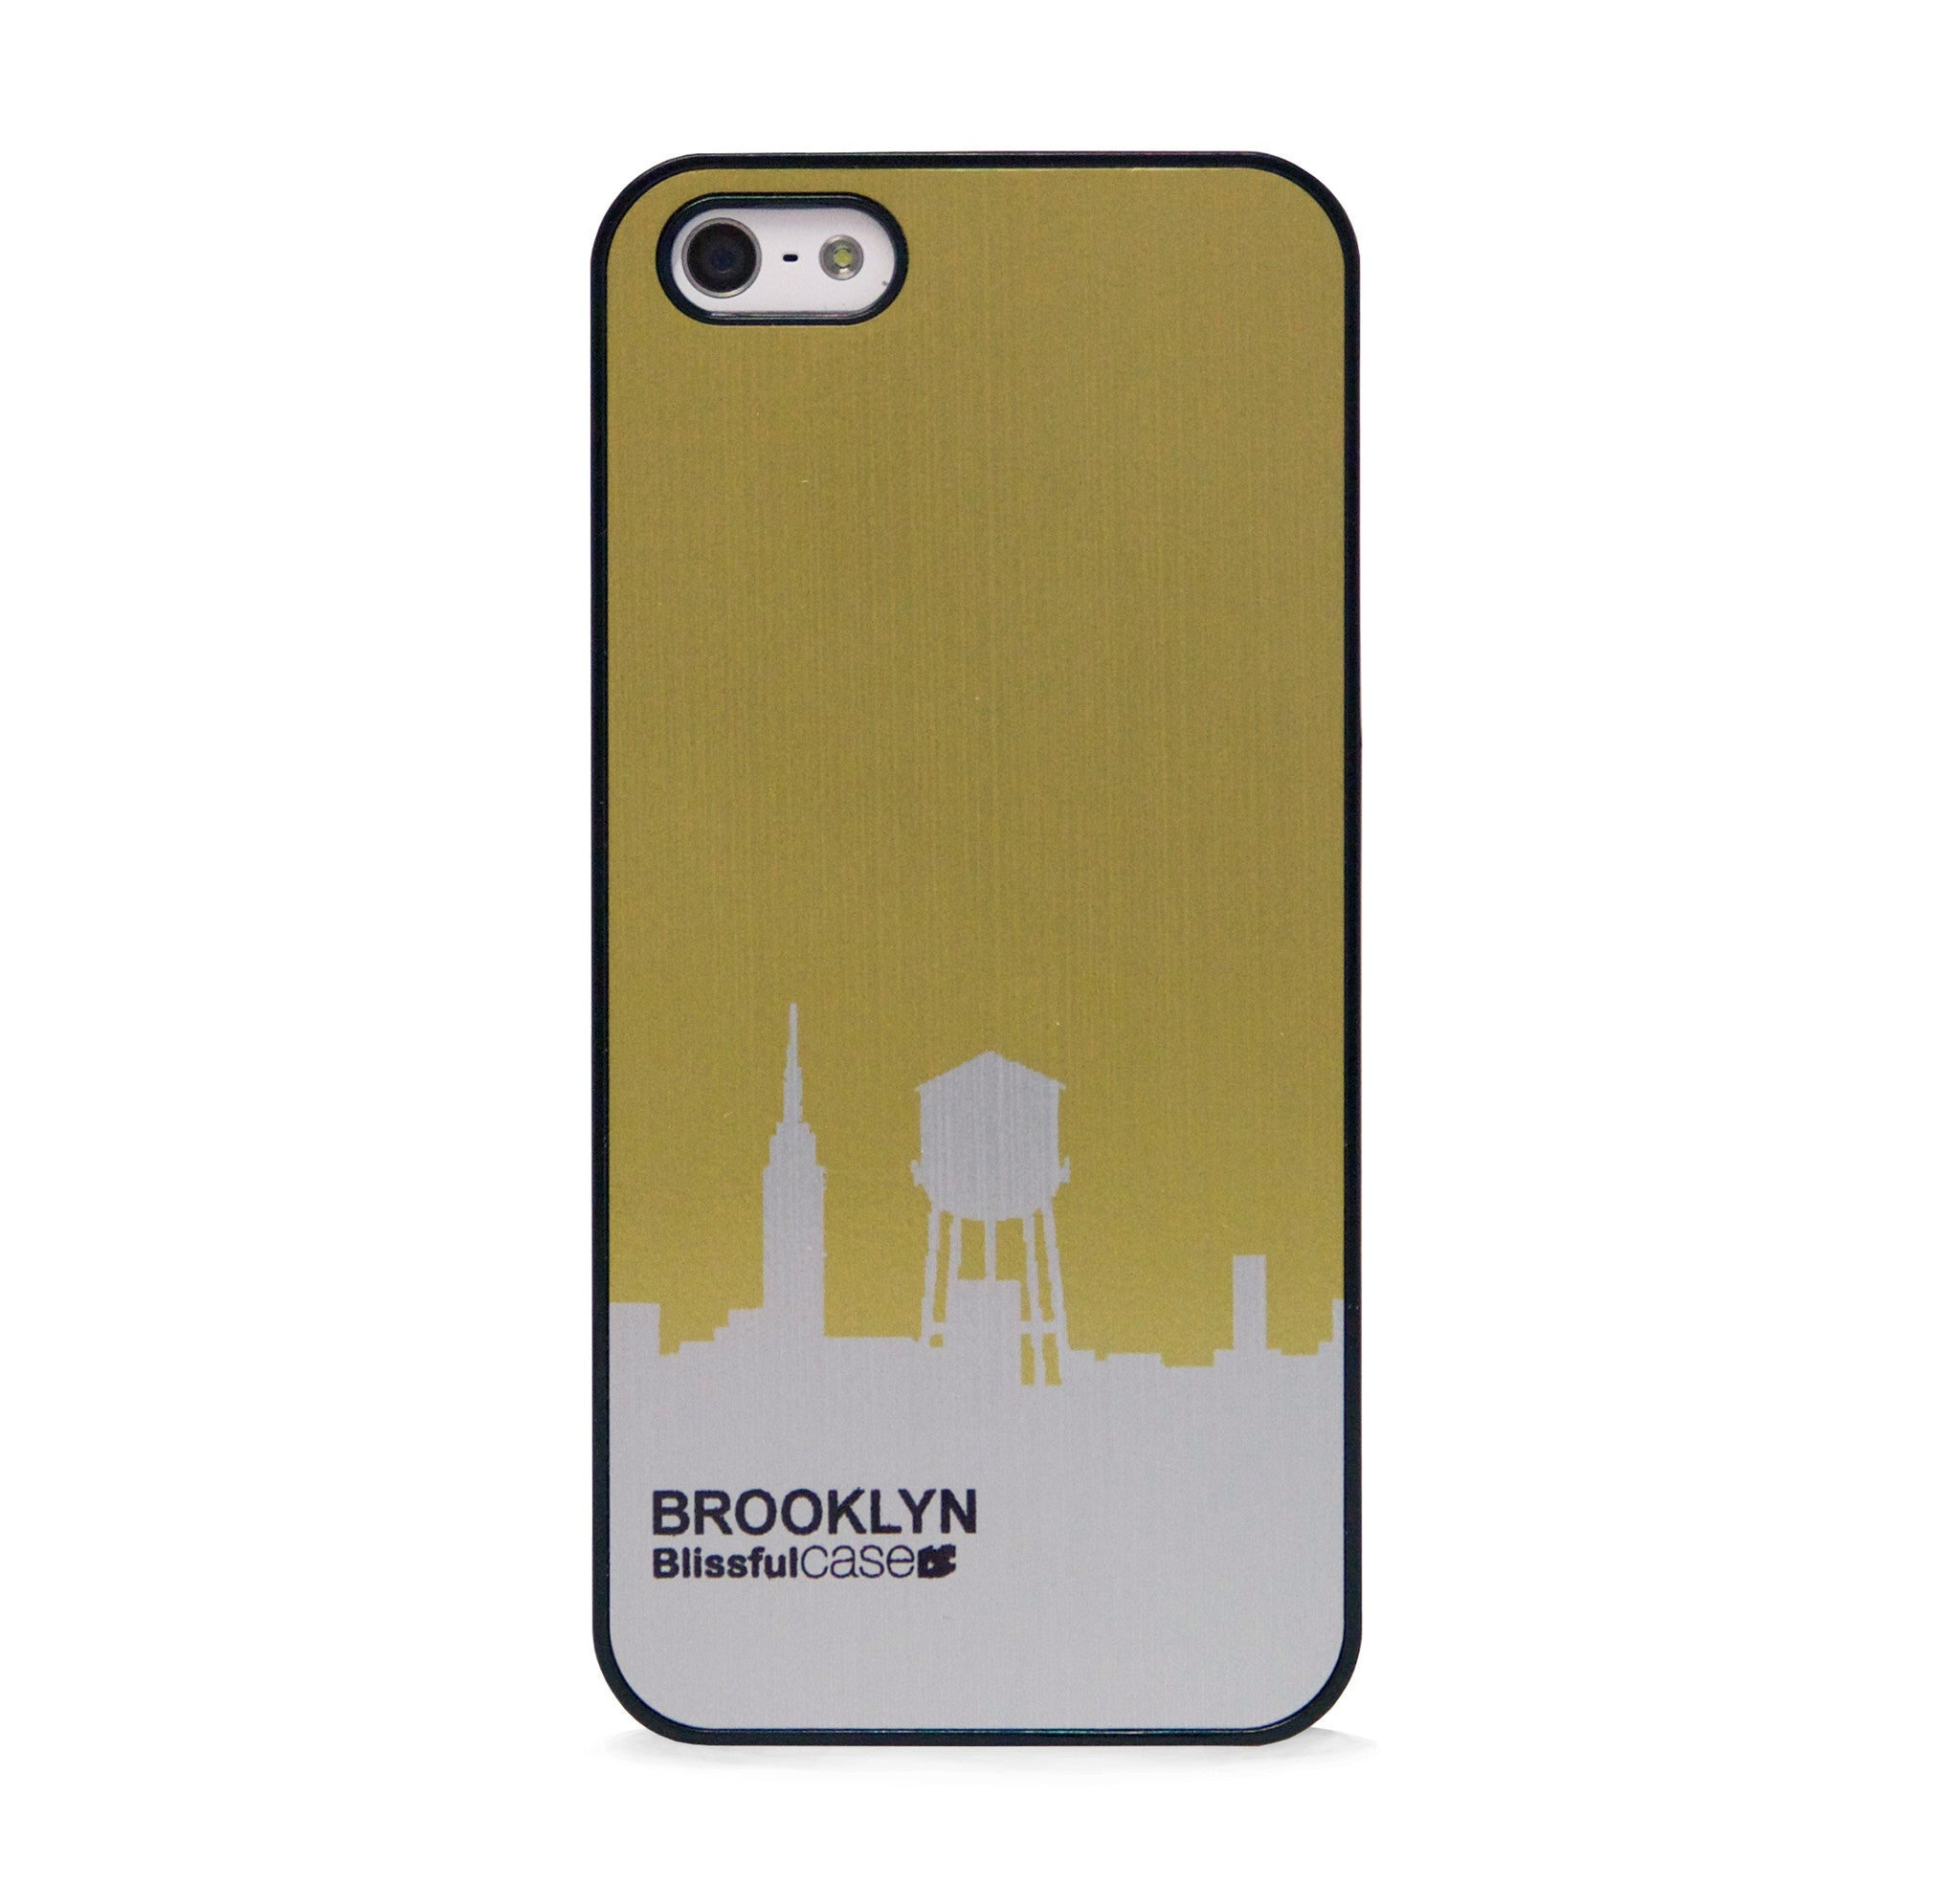 BROOKLYN YELLOW IPHONE 5/5S CASE